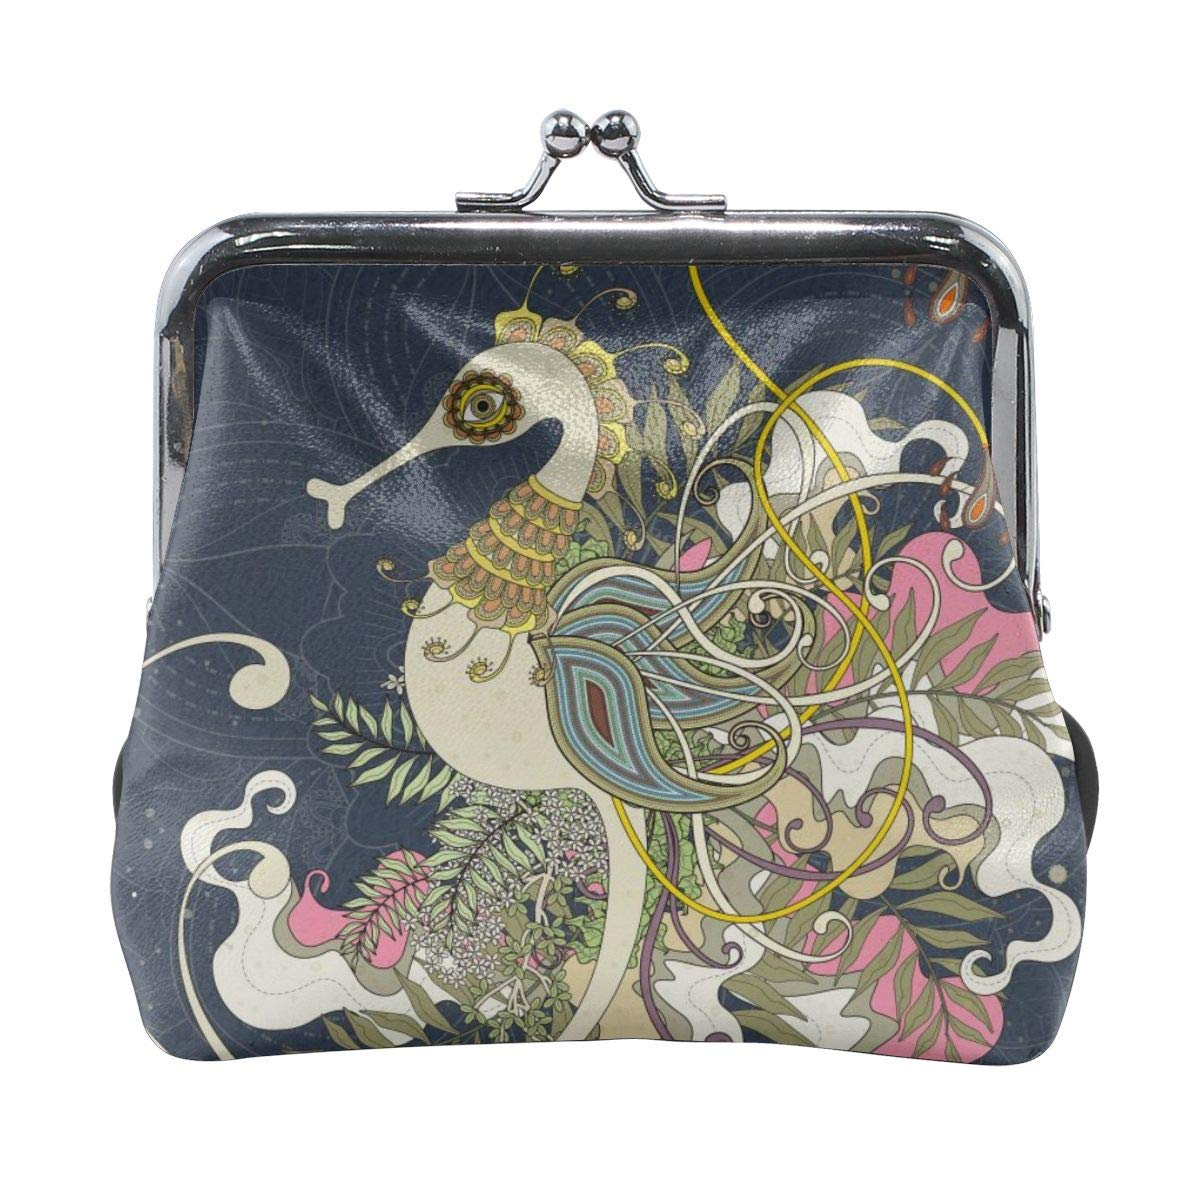 Fashion Ethnic Phoenix Credit Cards Buckle Coin Purse For Womens